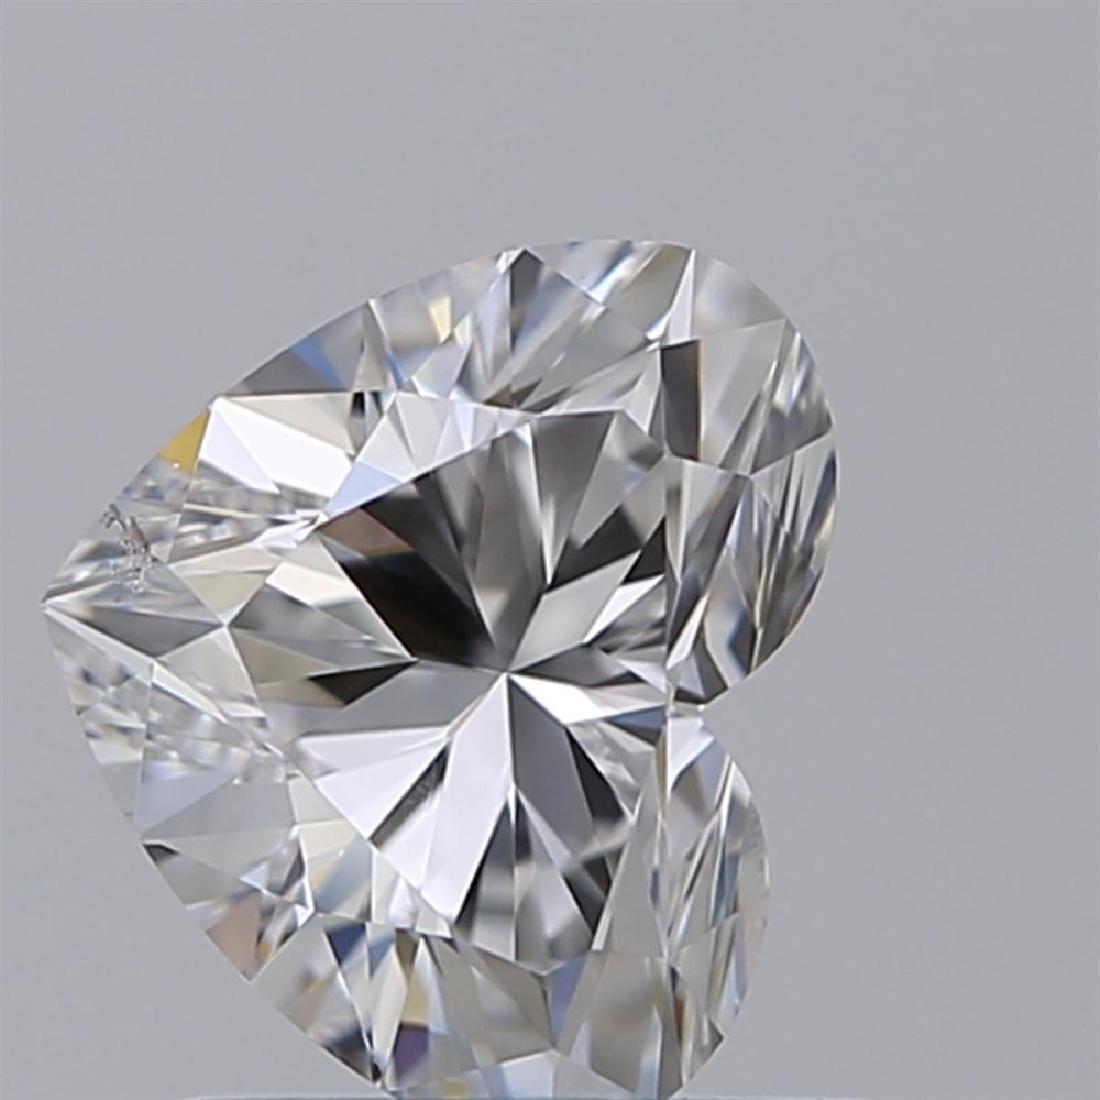 GIA/Heart/D/SI2/0.9ct